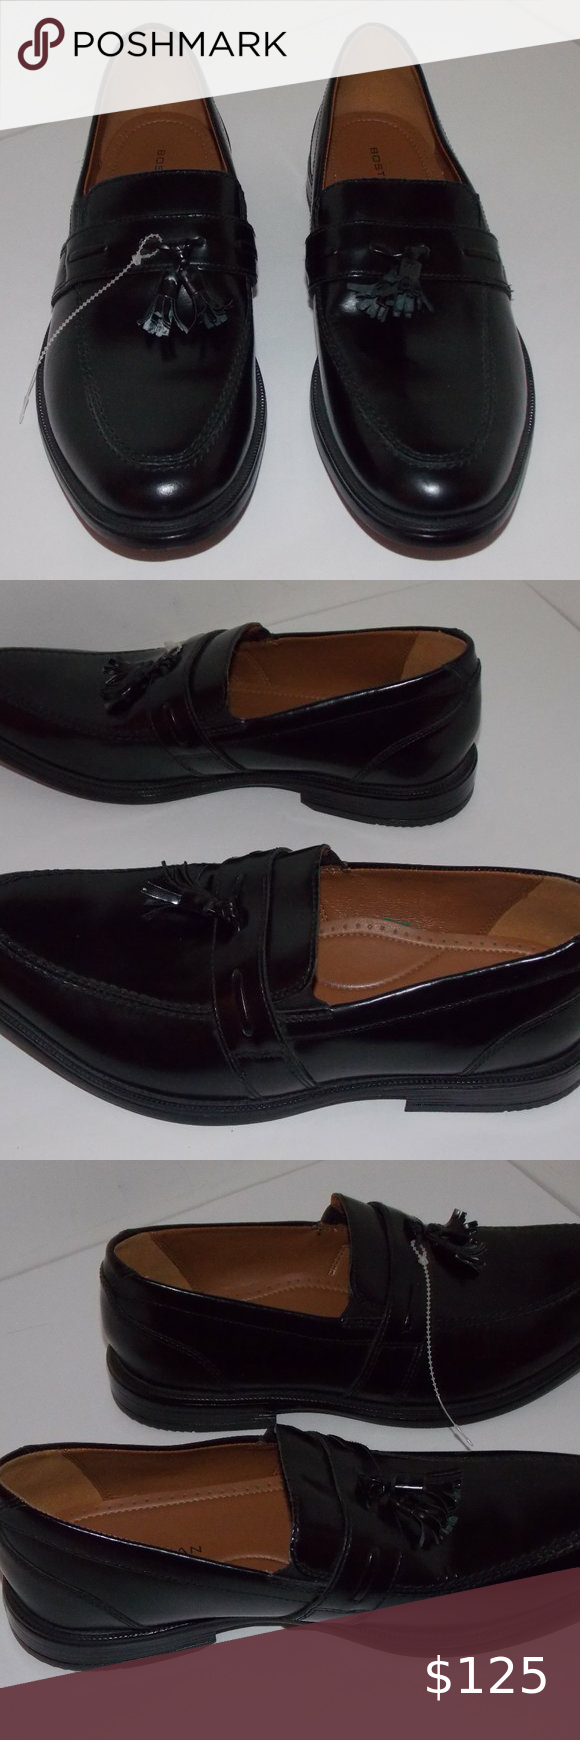 Bostonian Men S Black Leather Loafers Size 9 5m Mens Black Leather Loafers Mens Black Leather Black Leather Loafers [ 1740 x 580 Pixel ]